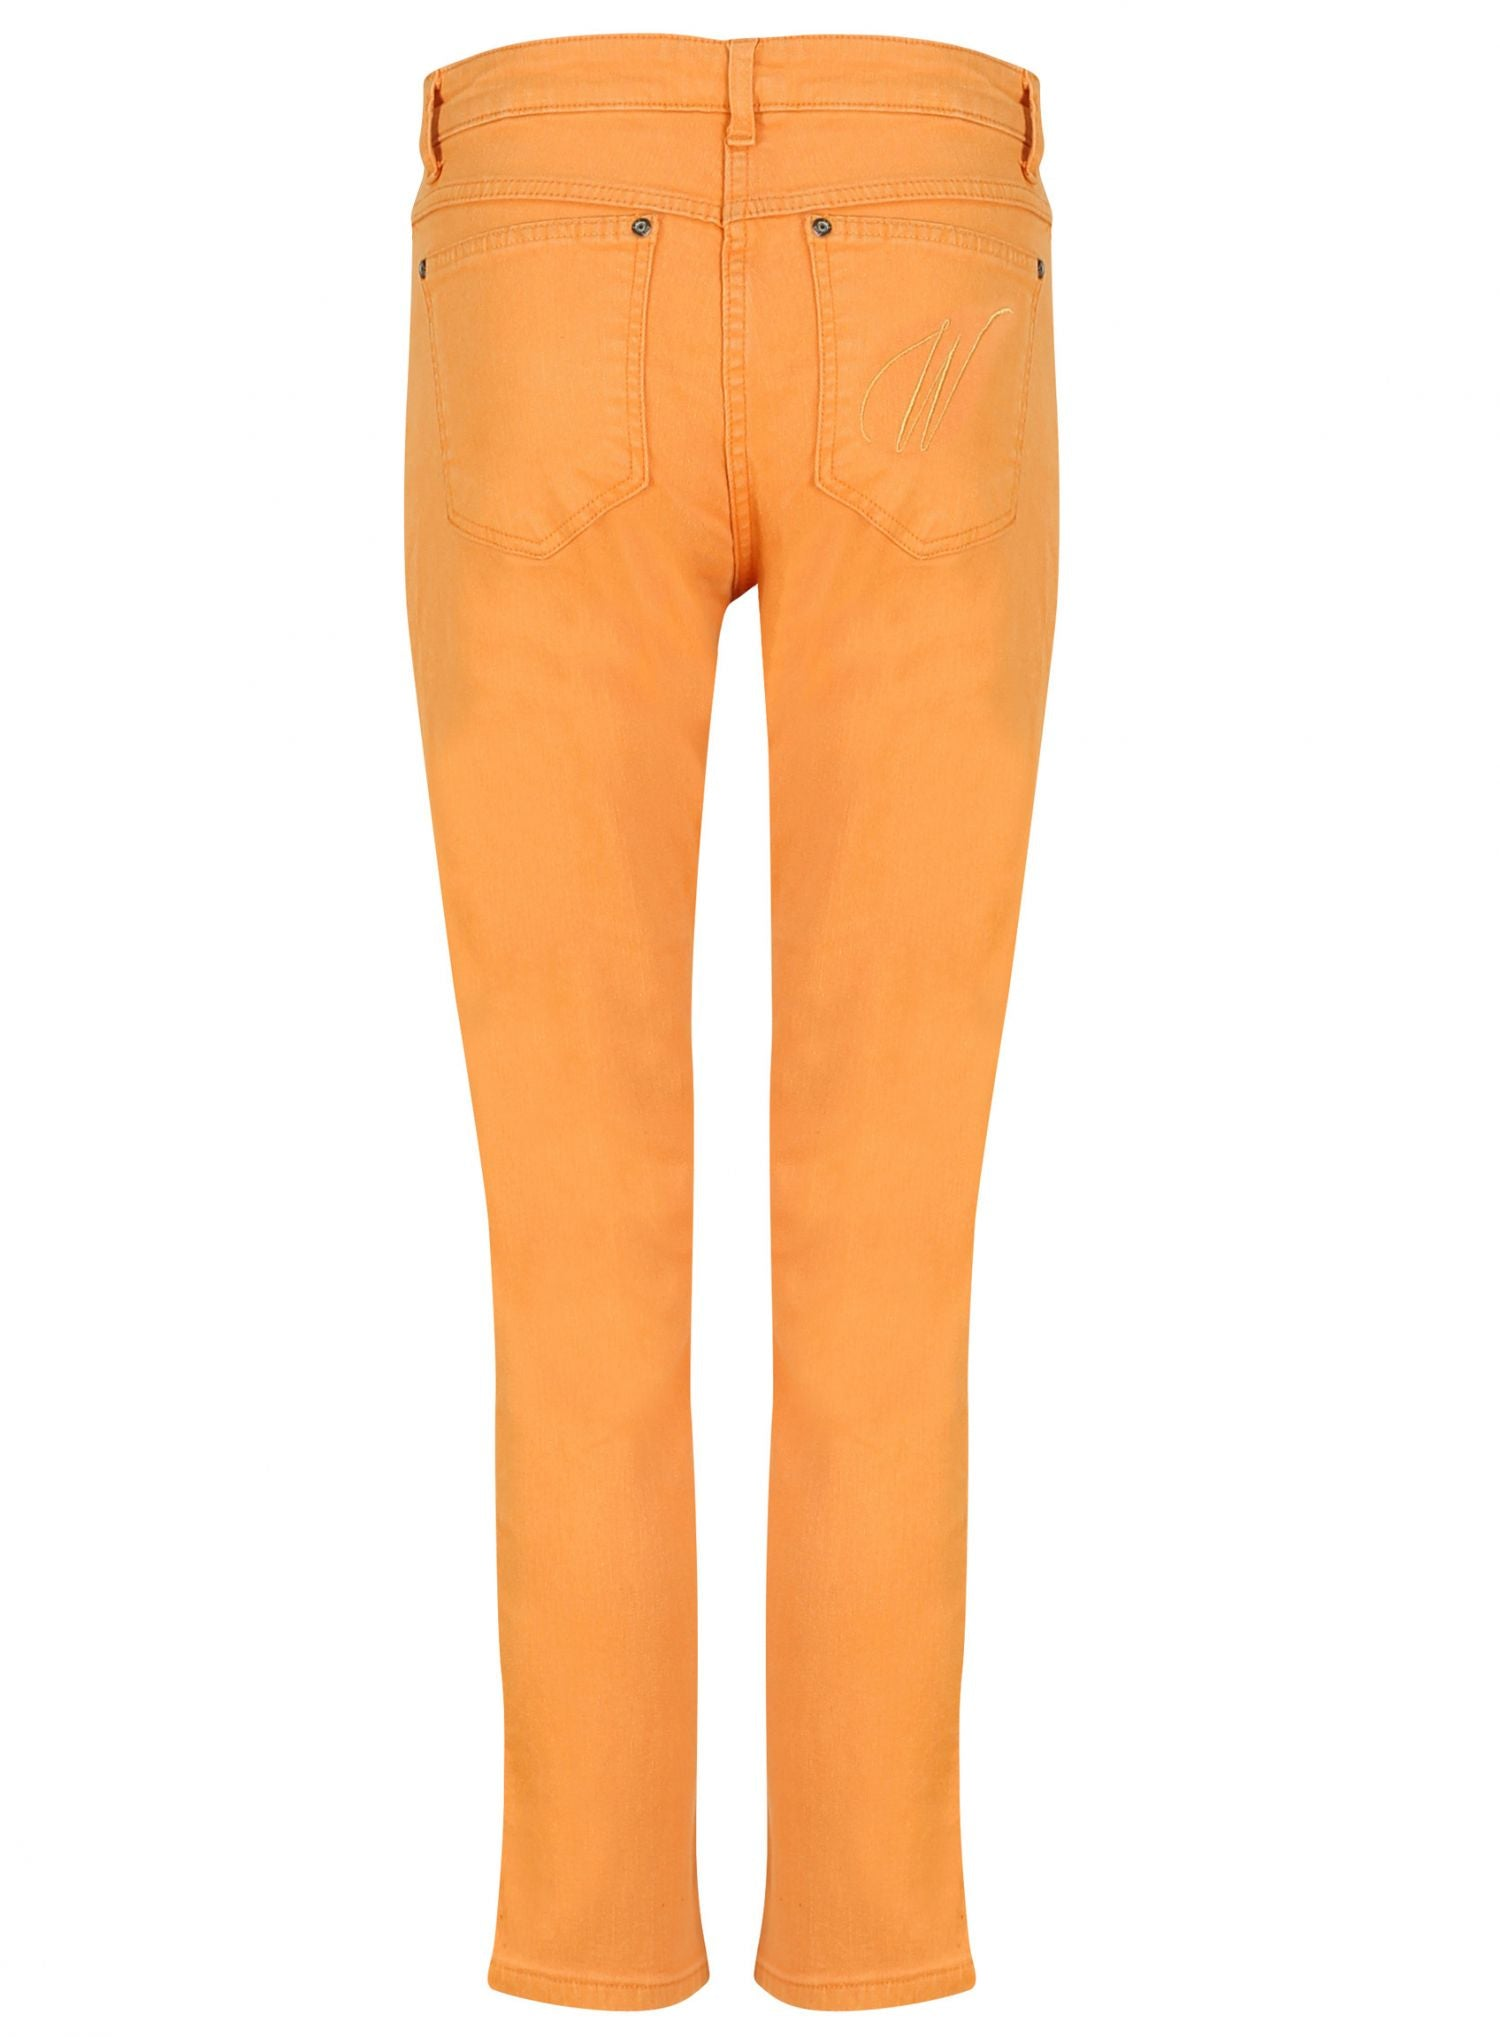 side view peach jeans faux leather piping